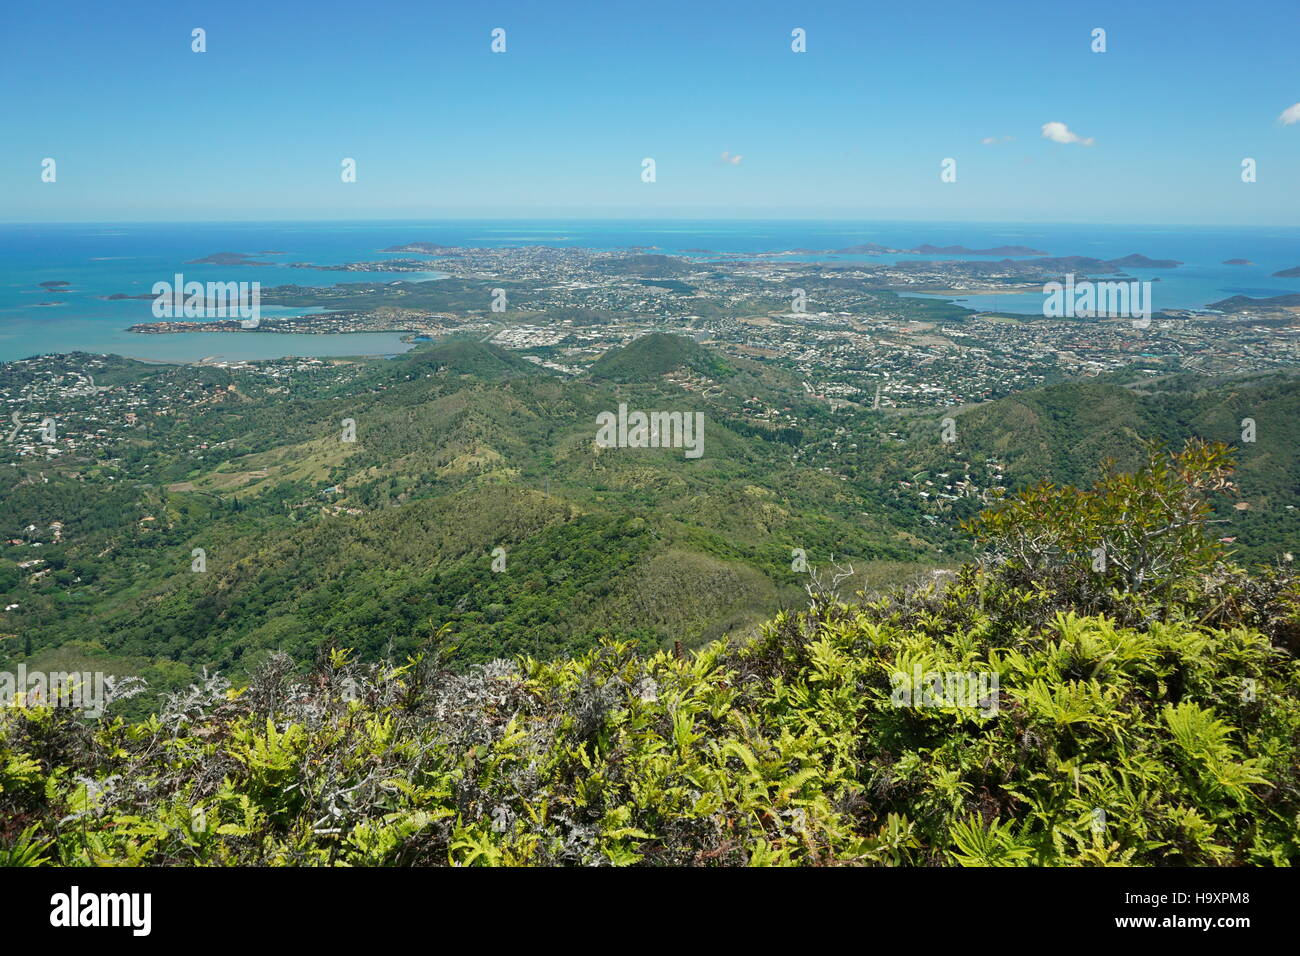 Viewpoint to the coastal city of Noumea from the peak Malaoui, New Caledonia, south Pacific - Stock Image